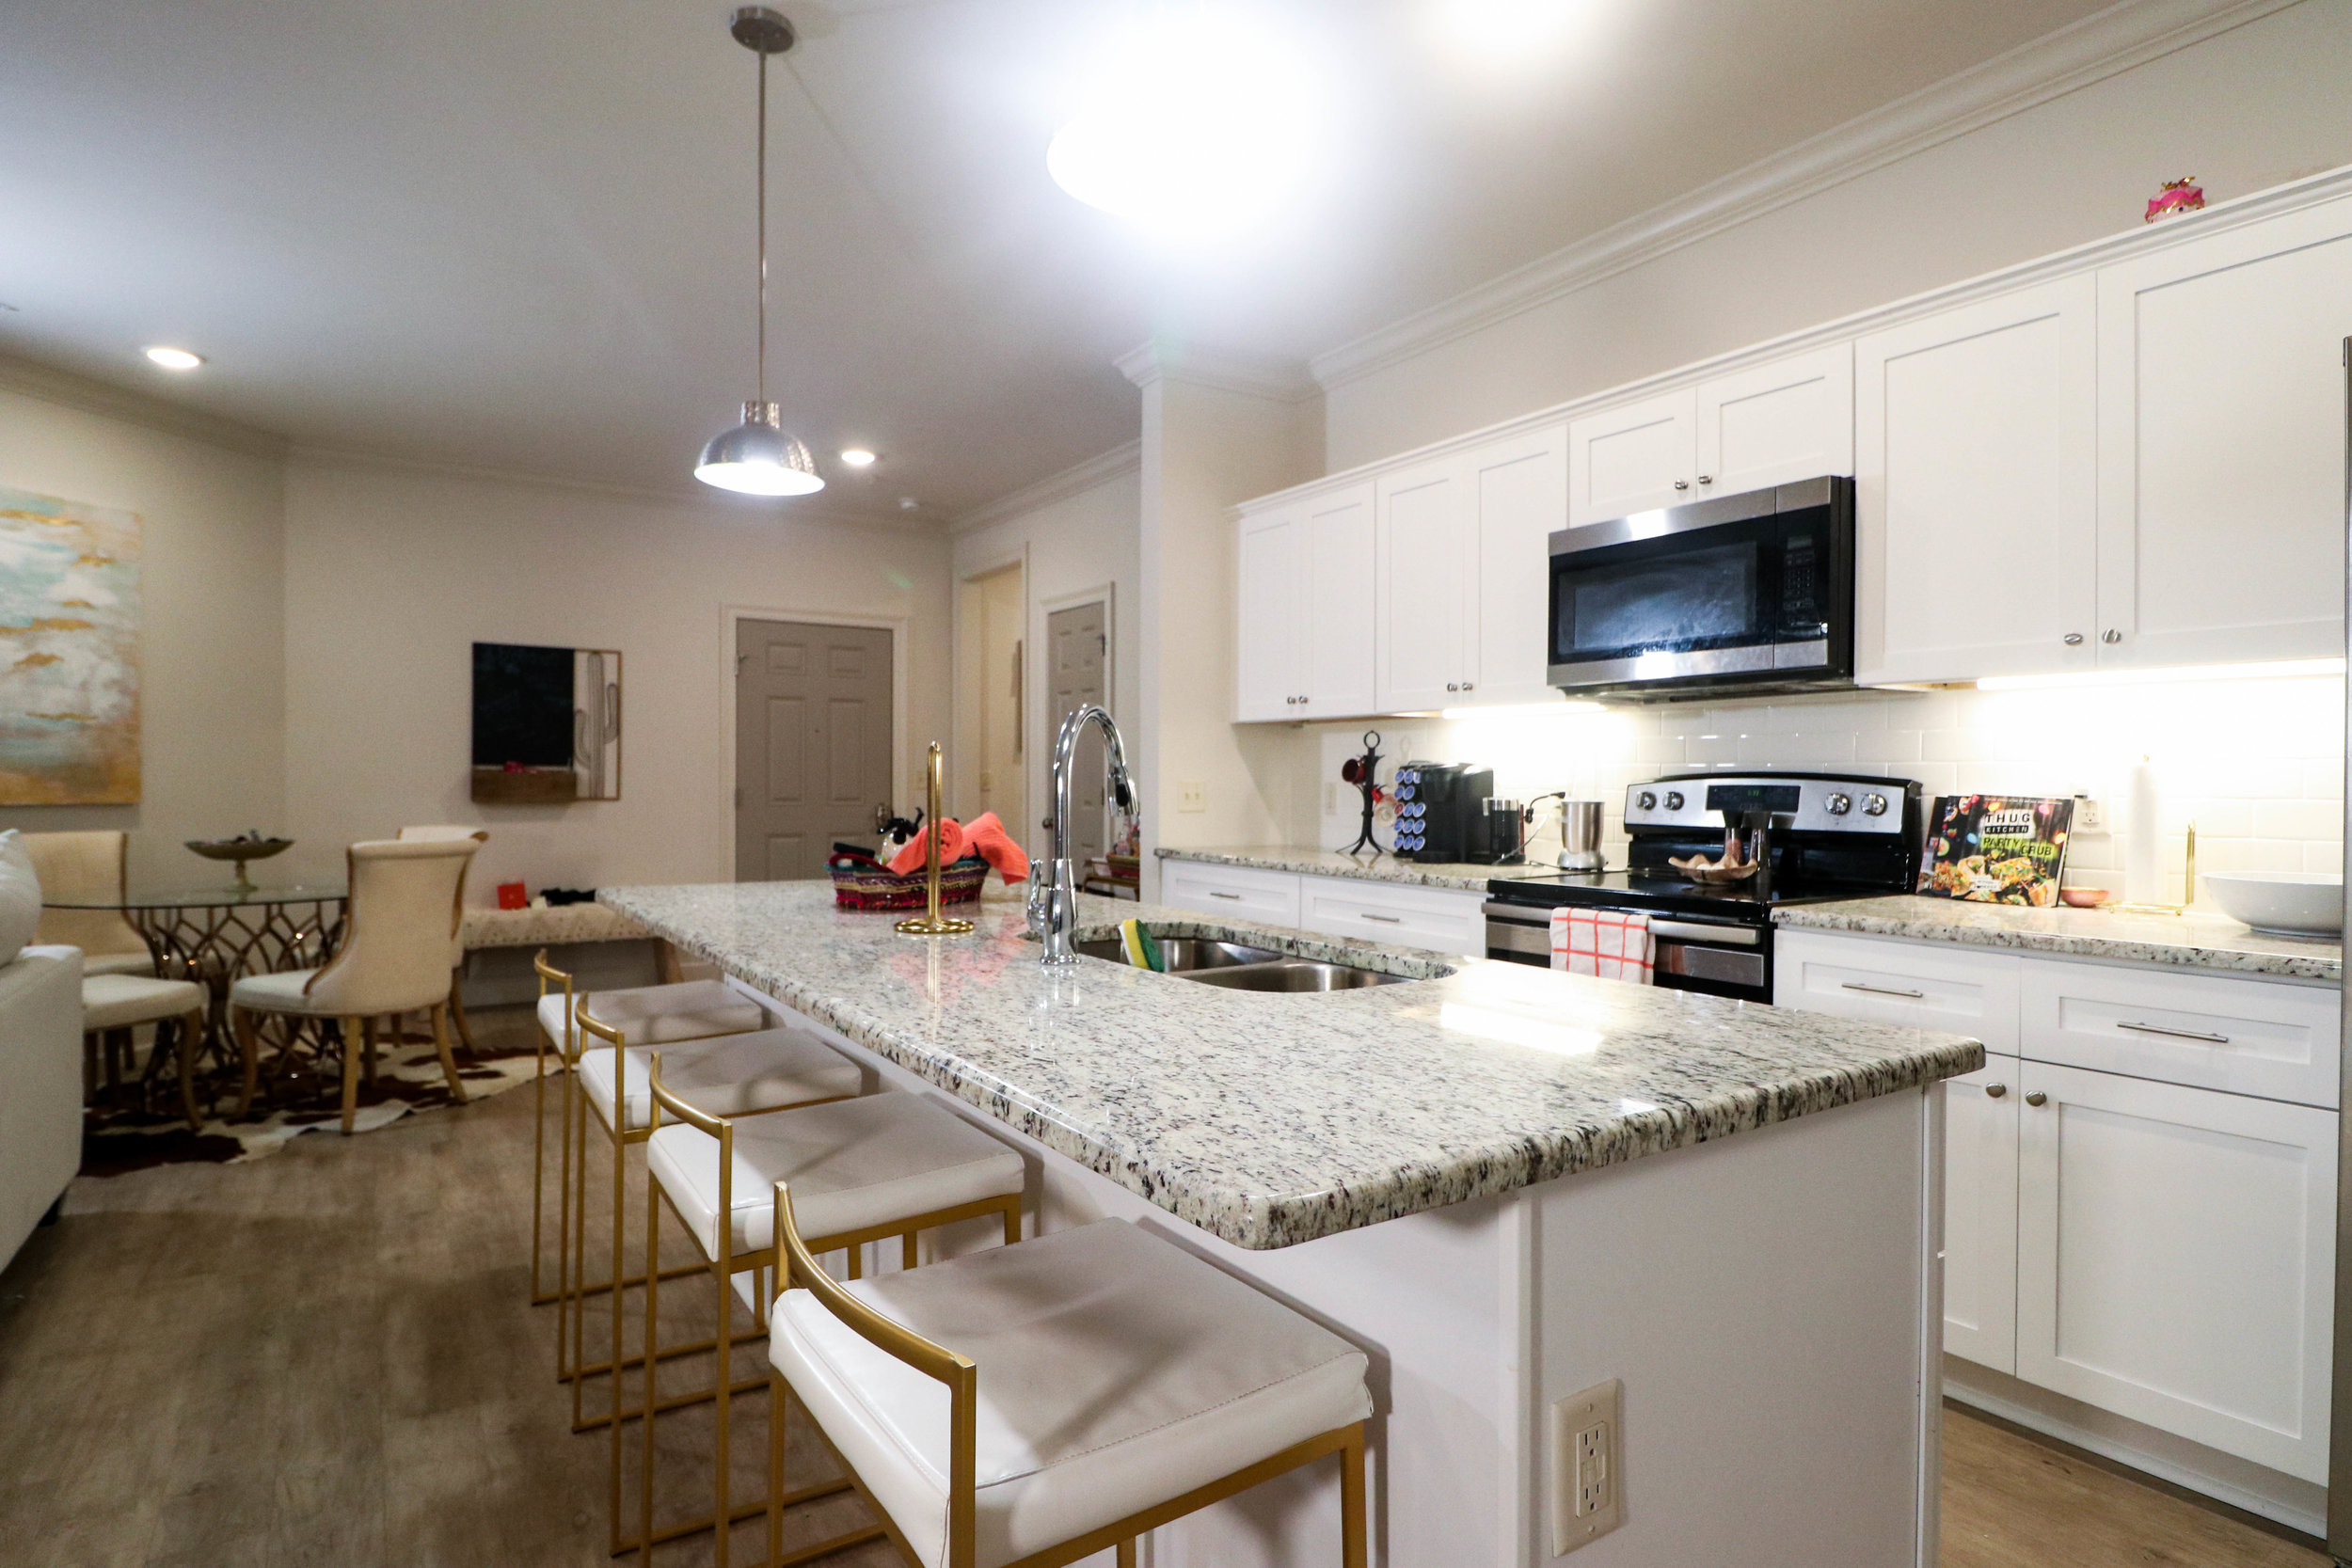 4BR Kitchen and Dining_.jpg